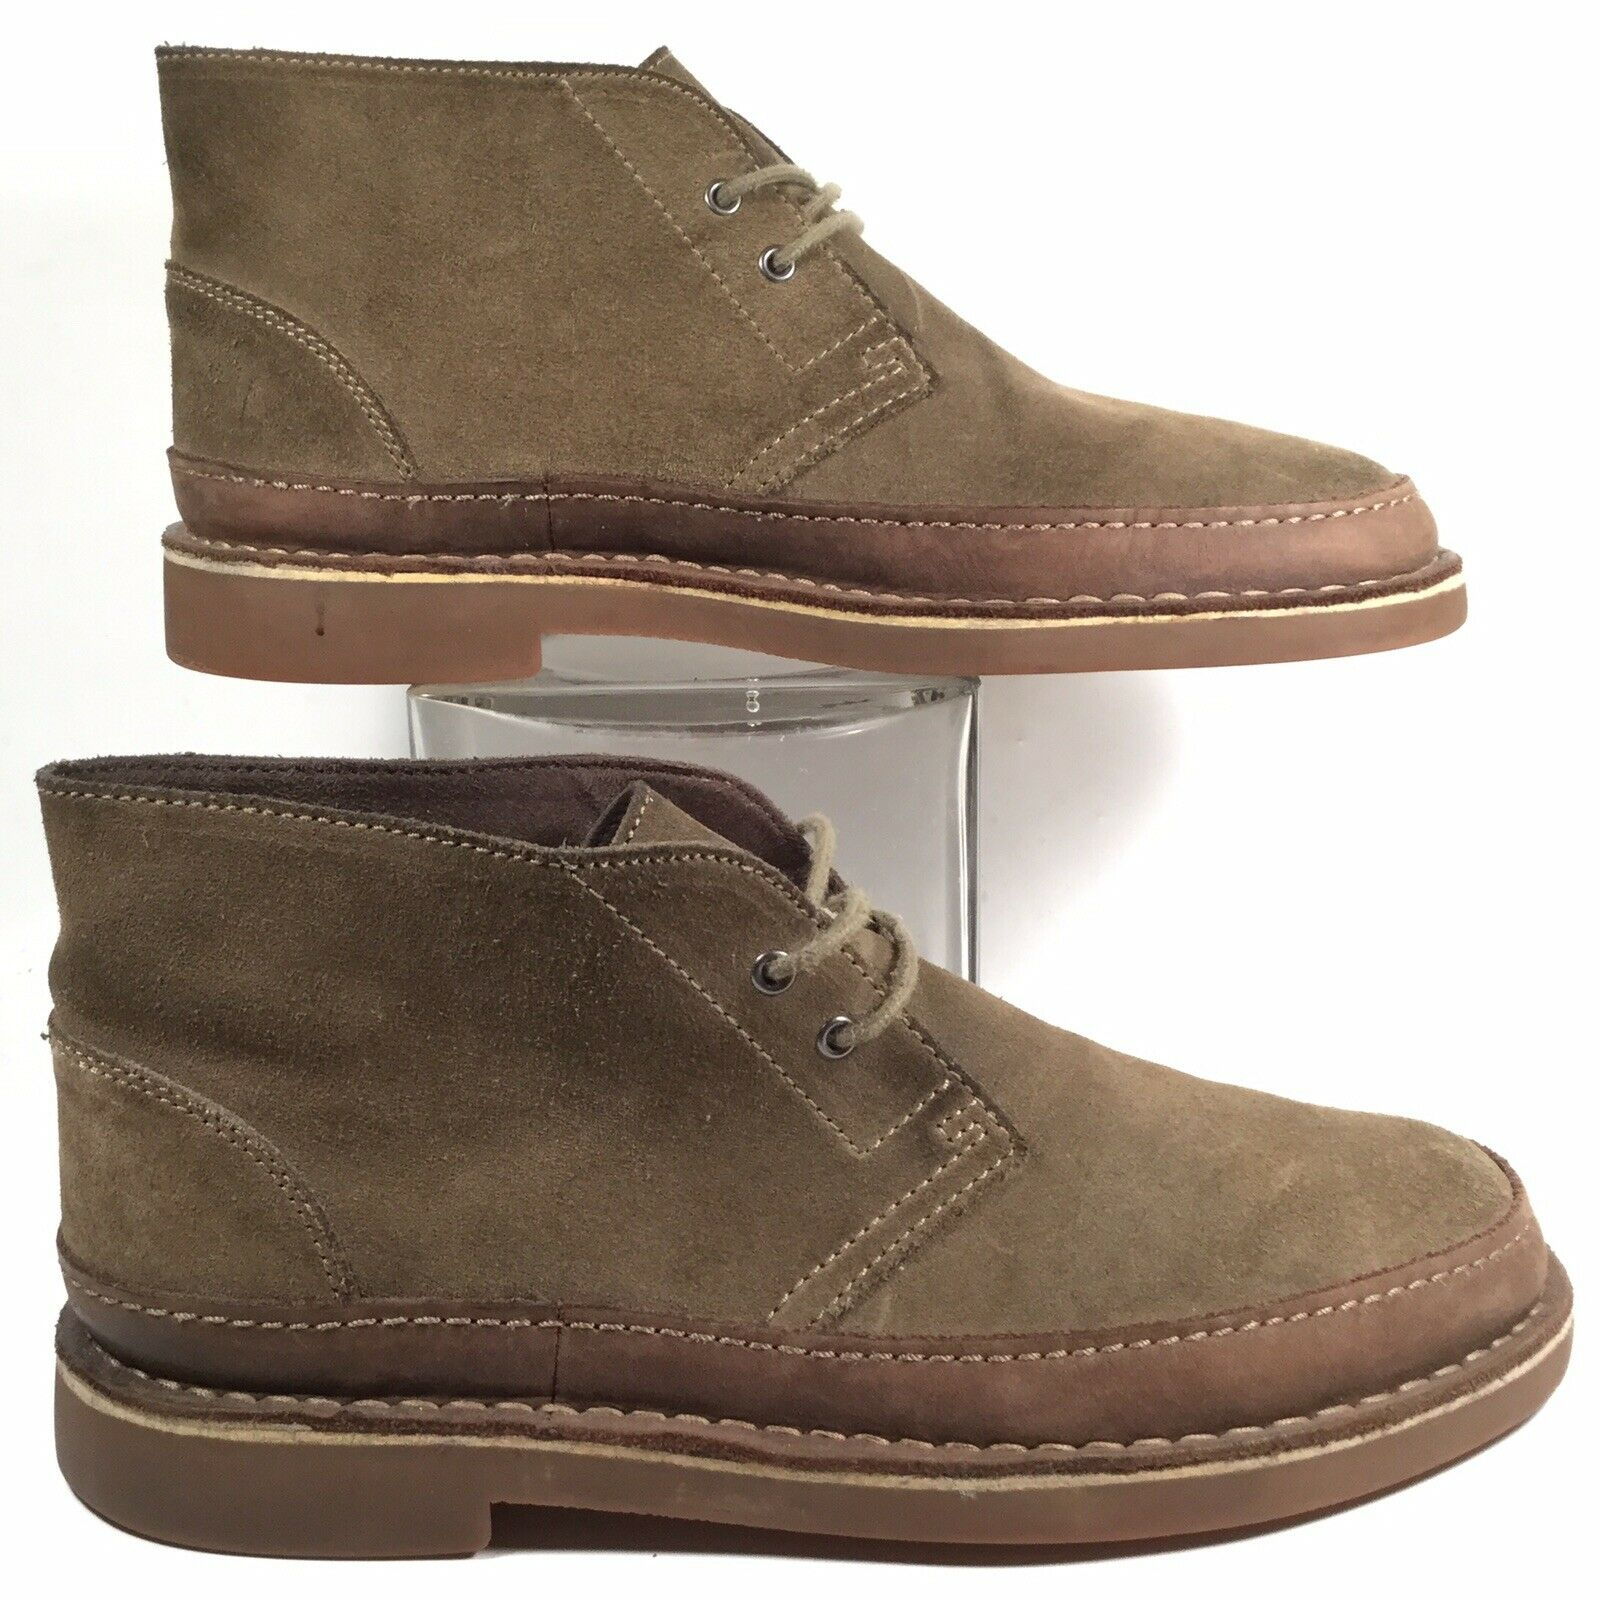 Clarks Mens Bushacre Brown Leather Lace Up Desert Chukka Ankle Boots US 8.5 M